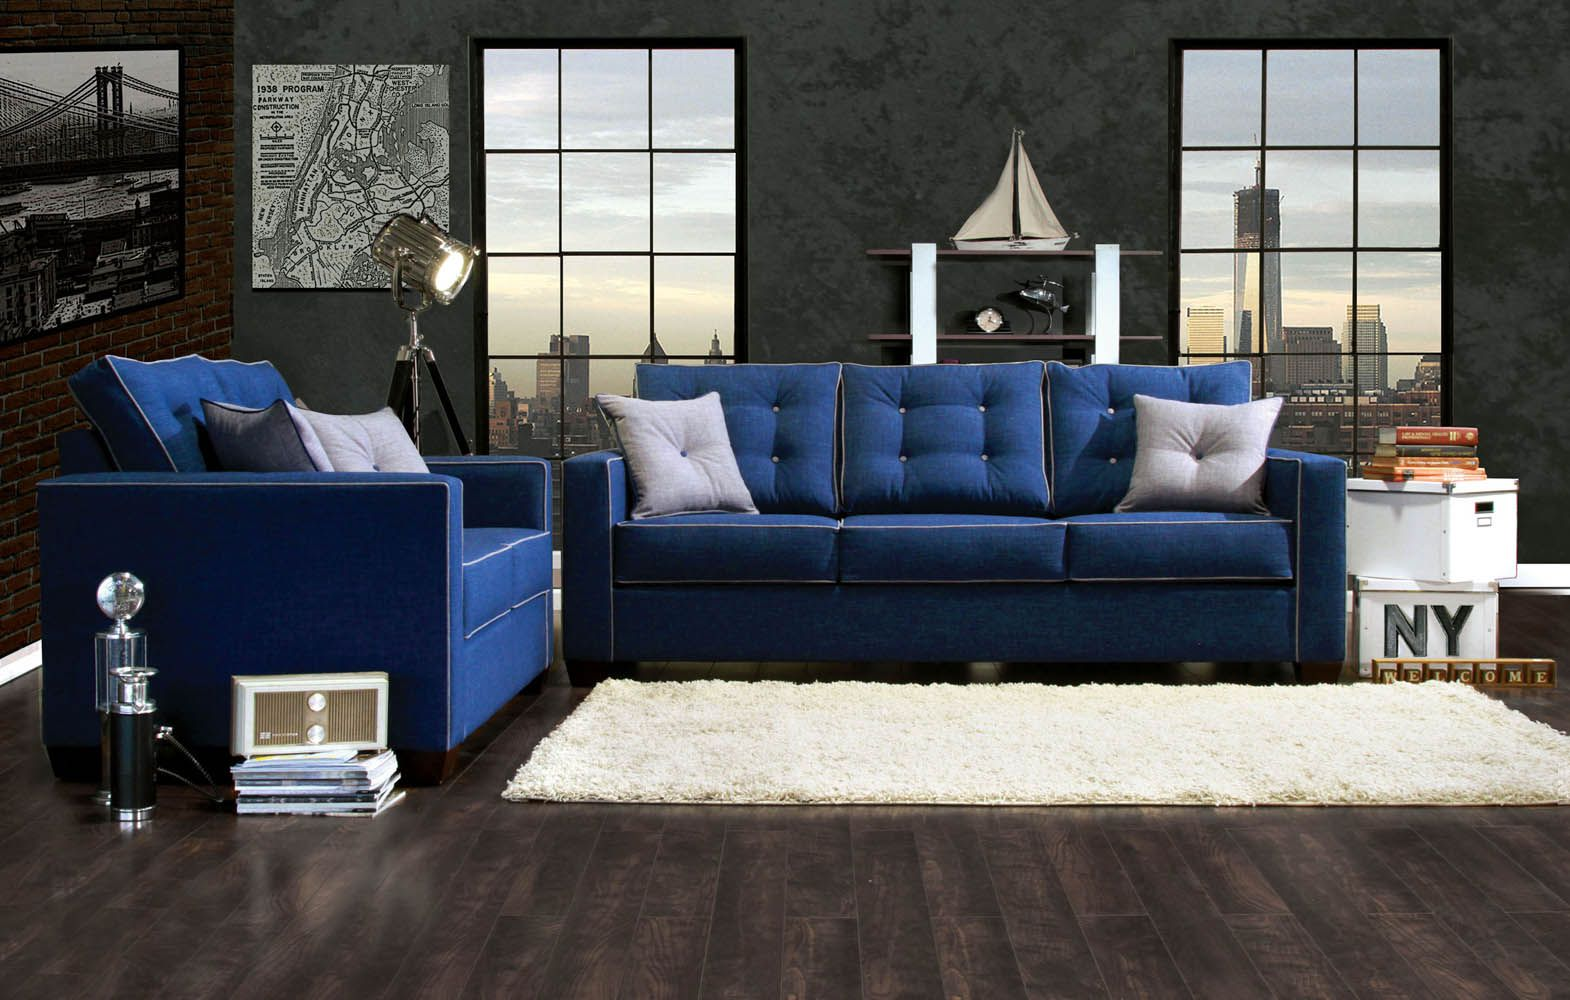 High Quality Kourtney Quilted Side Leather Sofa   Couches U0026 Sofas   Furniture   Macyu0027s  $899 11/12/15 | Home: Sofas | Pinterest | Couch Sofa, Sofas And Leather  Sofas